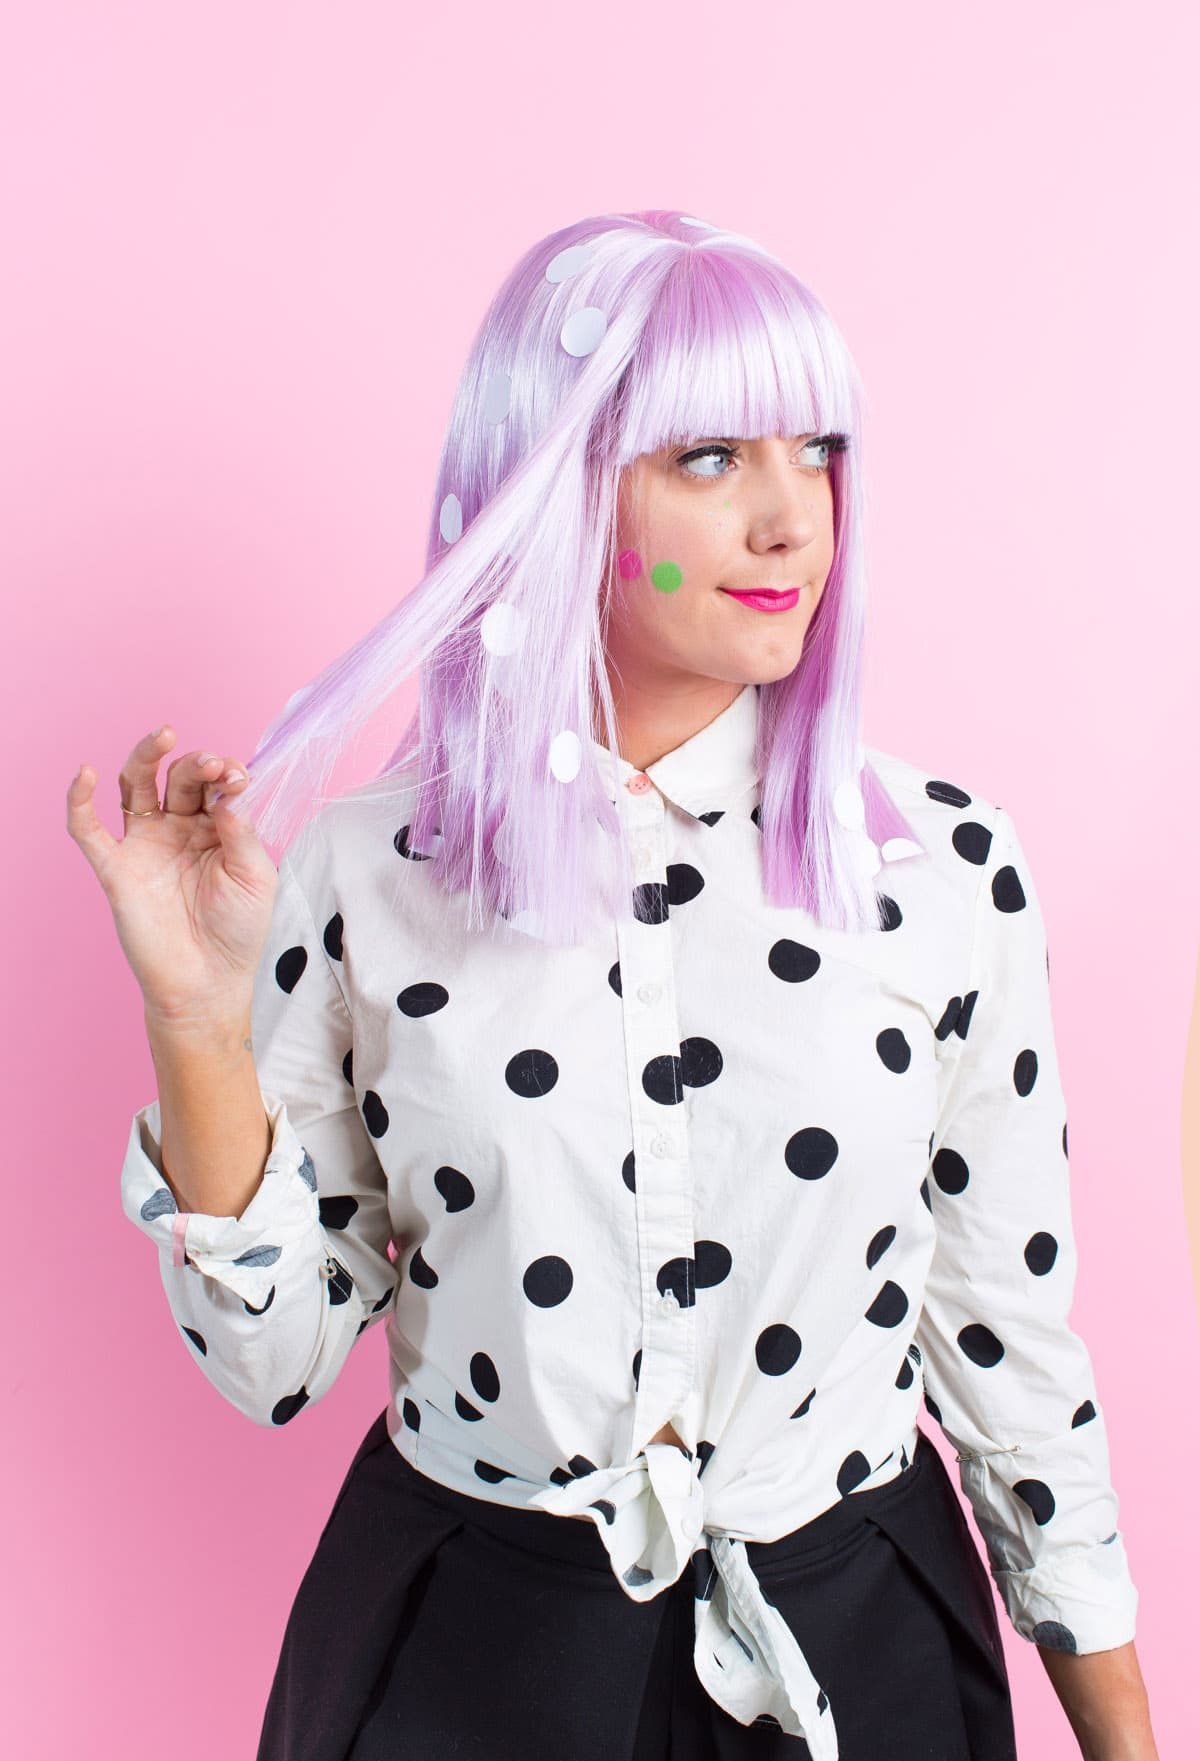 Winks & Wigs: DIY Wig and Lash Combinations for Halloween by Sugar & Cloth -lavender wig - polka dot - ideas - ashley rose - best DIY blog - houston blogger #diy #blogger #costume #halloween #diycostume #halloweencostume #wig #falsies #lastminute